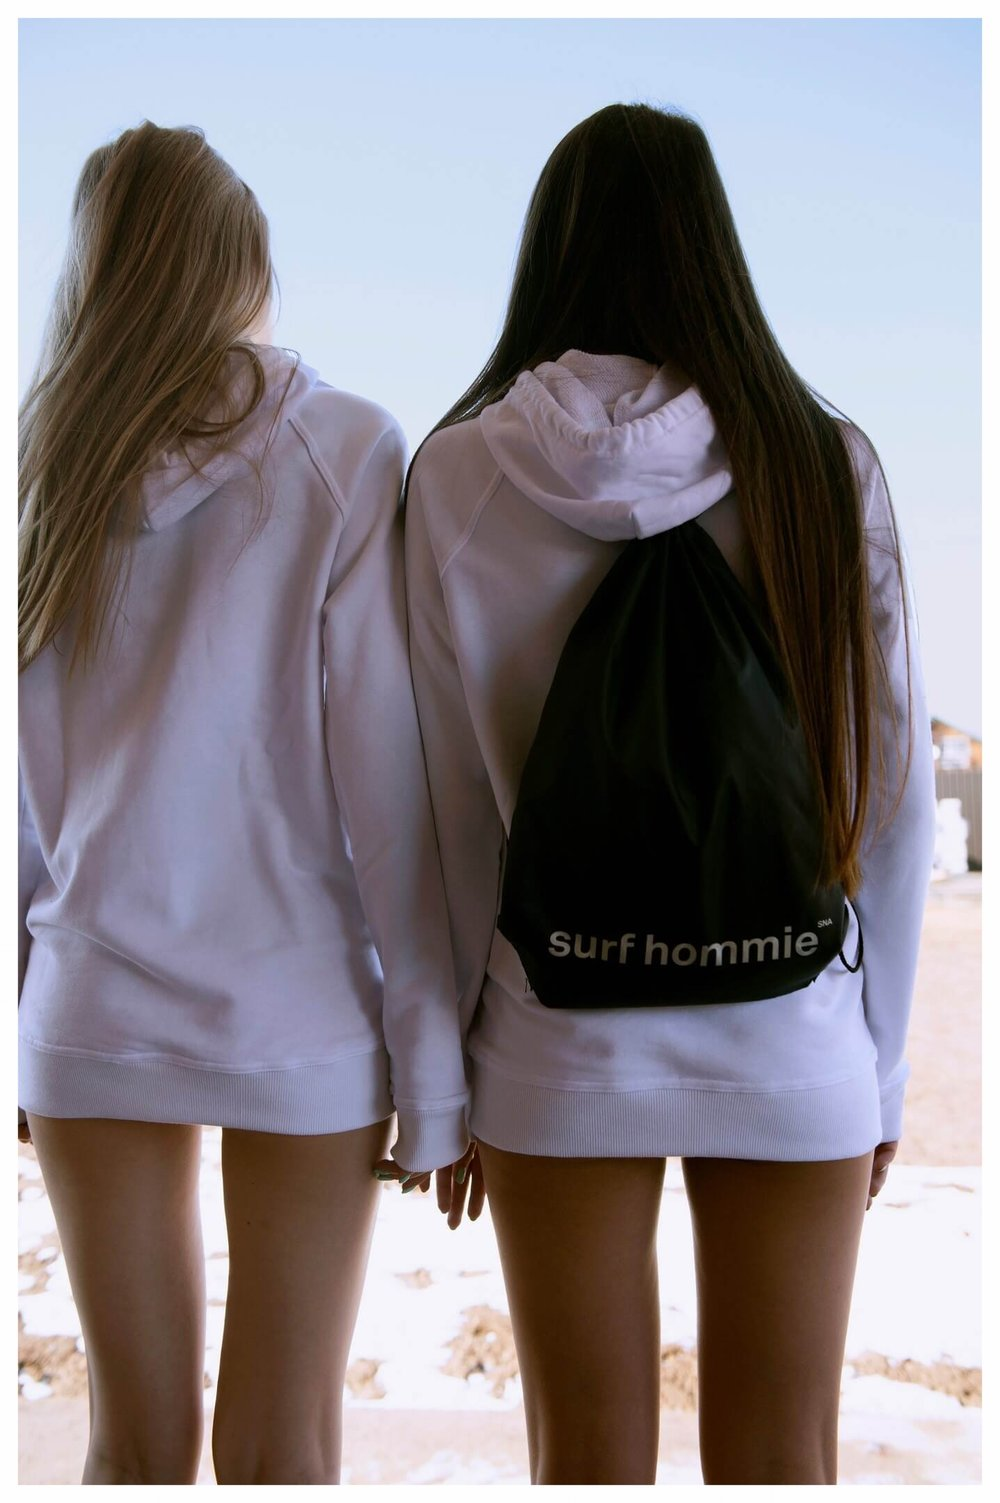 Surf Hommie girls